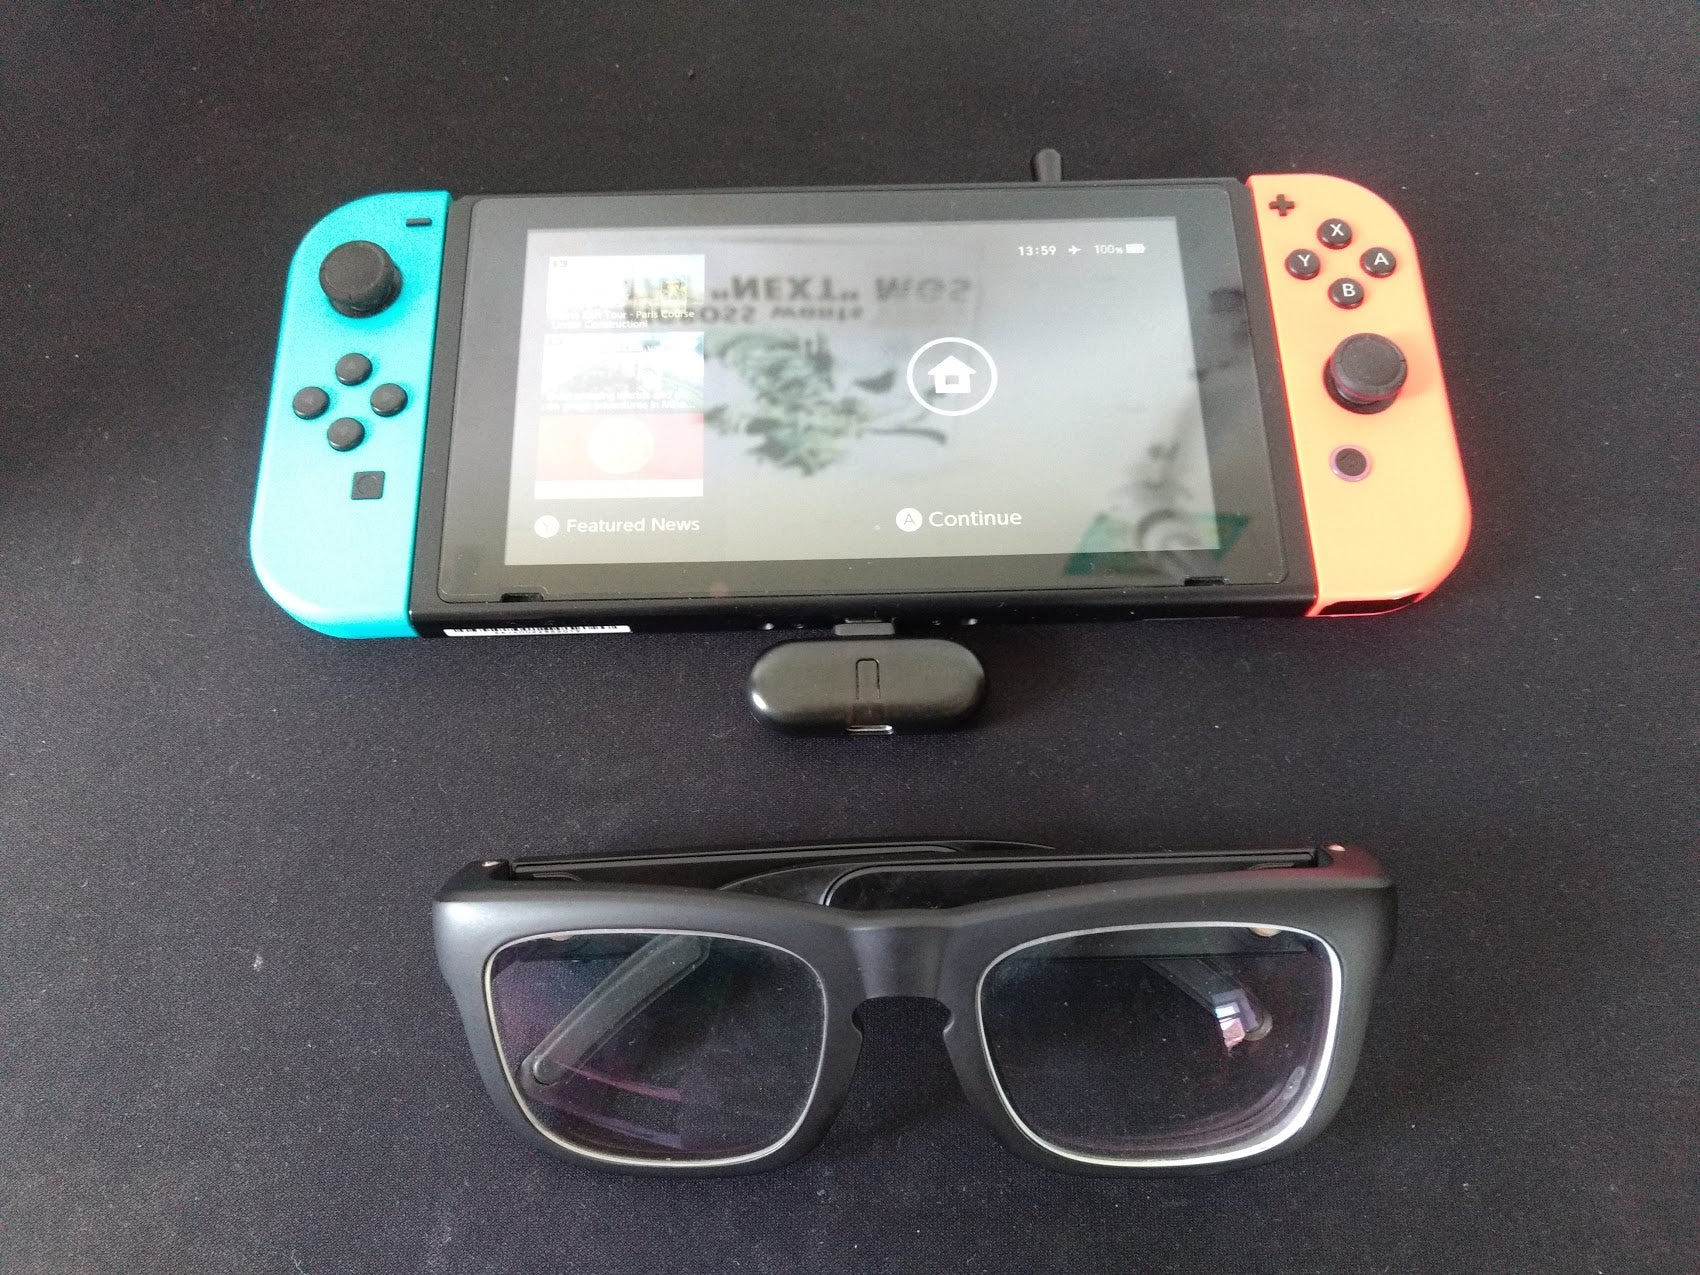 Of course, these mutrics sunglasses experiences extend to gaming as well